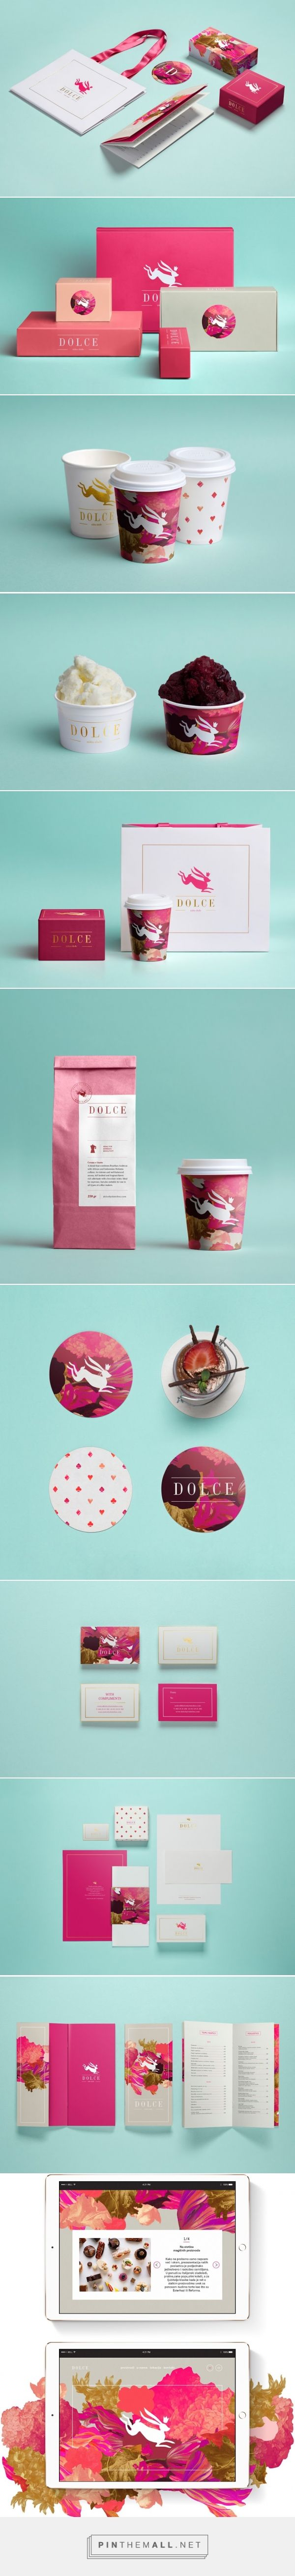 Dolce  - Packaging of the World - Creative Package Design Gallery - http://www.packagingoftheworld.com/2016/04/dolce.html